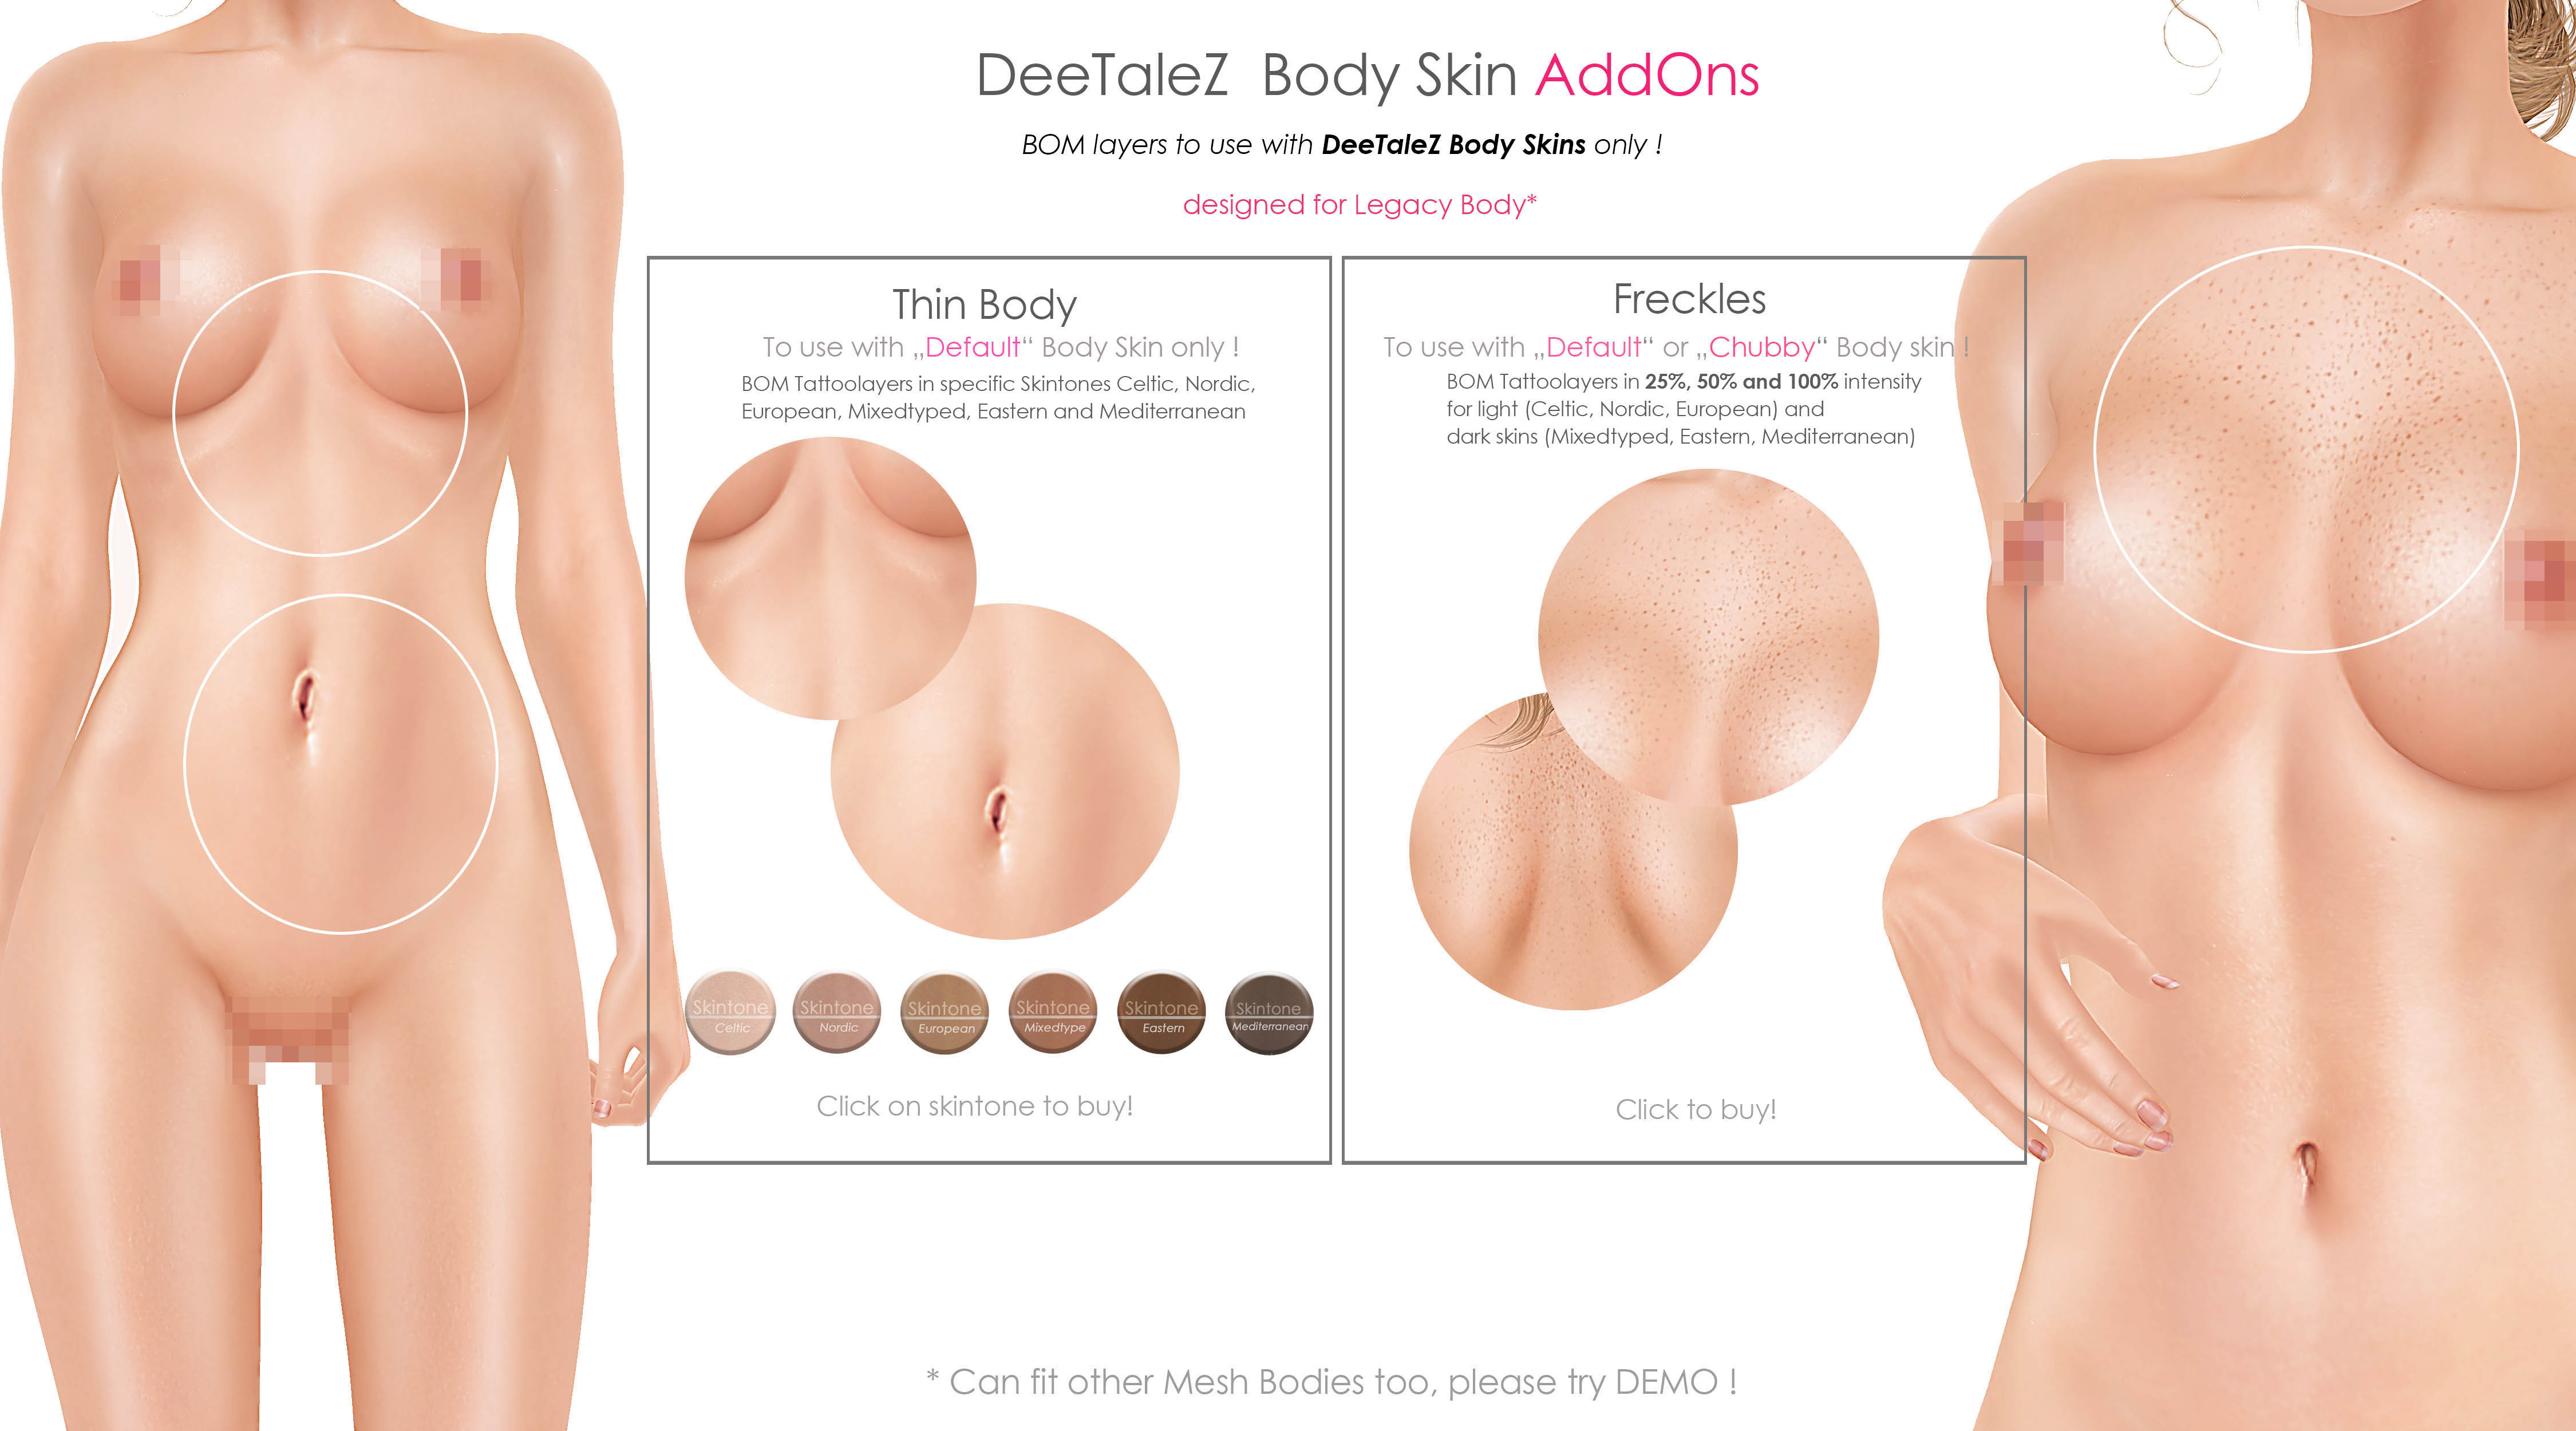 BODY ADDONS VENDOR default skin THIN PG